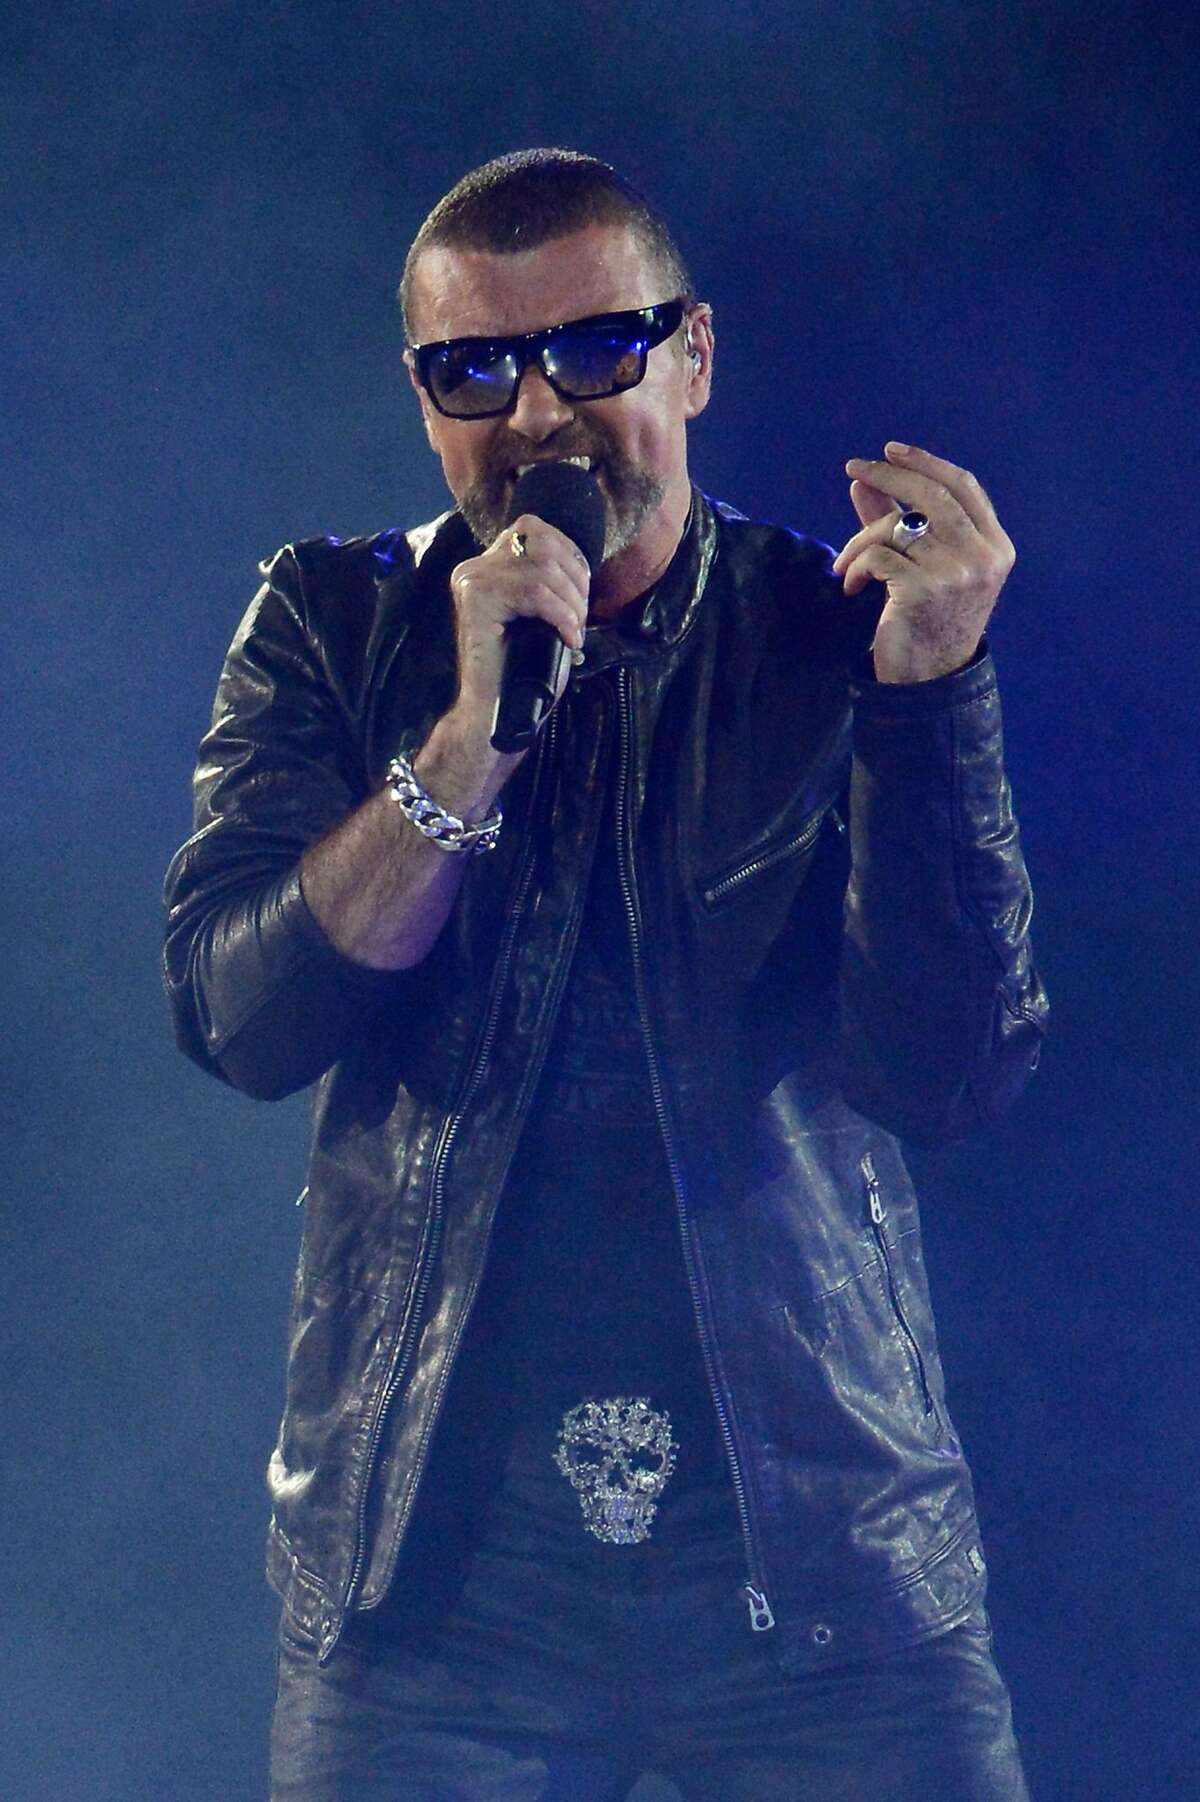 (FILES) This file photo taken on August 12, 2012 shows British singer George Michael performing during the closing ceremony of the 2012 London Olympic Games at the Olympic stadium in London on August 12, 2012. A previously unheard song by British pop icon George Michael is set for its first radio play on September 7, 2017, the first such release since the musician's death last year, his former publicist said. The new single from Sony Music will be played on BBC Radio 2 at 0800 GMT, publicist Connie Filippello said on Wednesday, without naming the song or giving further details. / AFP PHOTO / ADRIAN DENNISADRIAN DENNIS/AFP/Getty Images